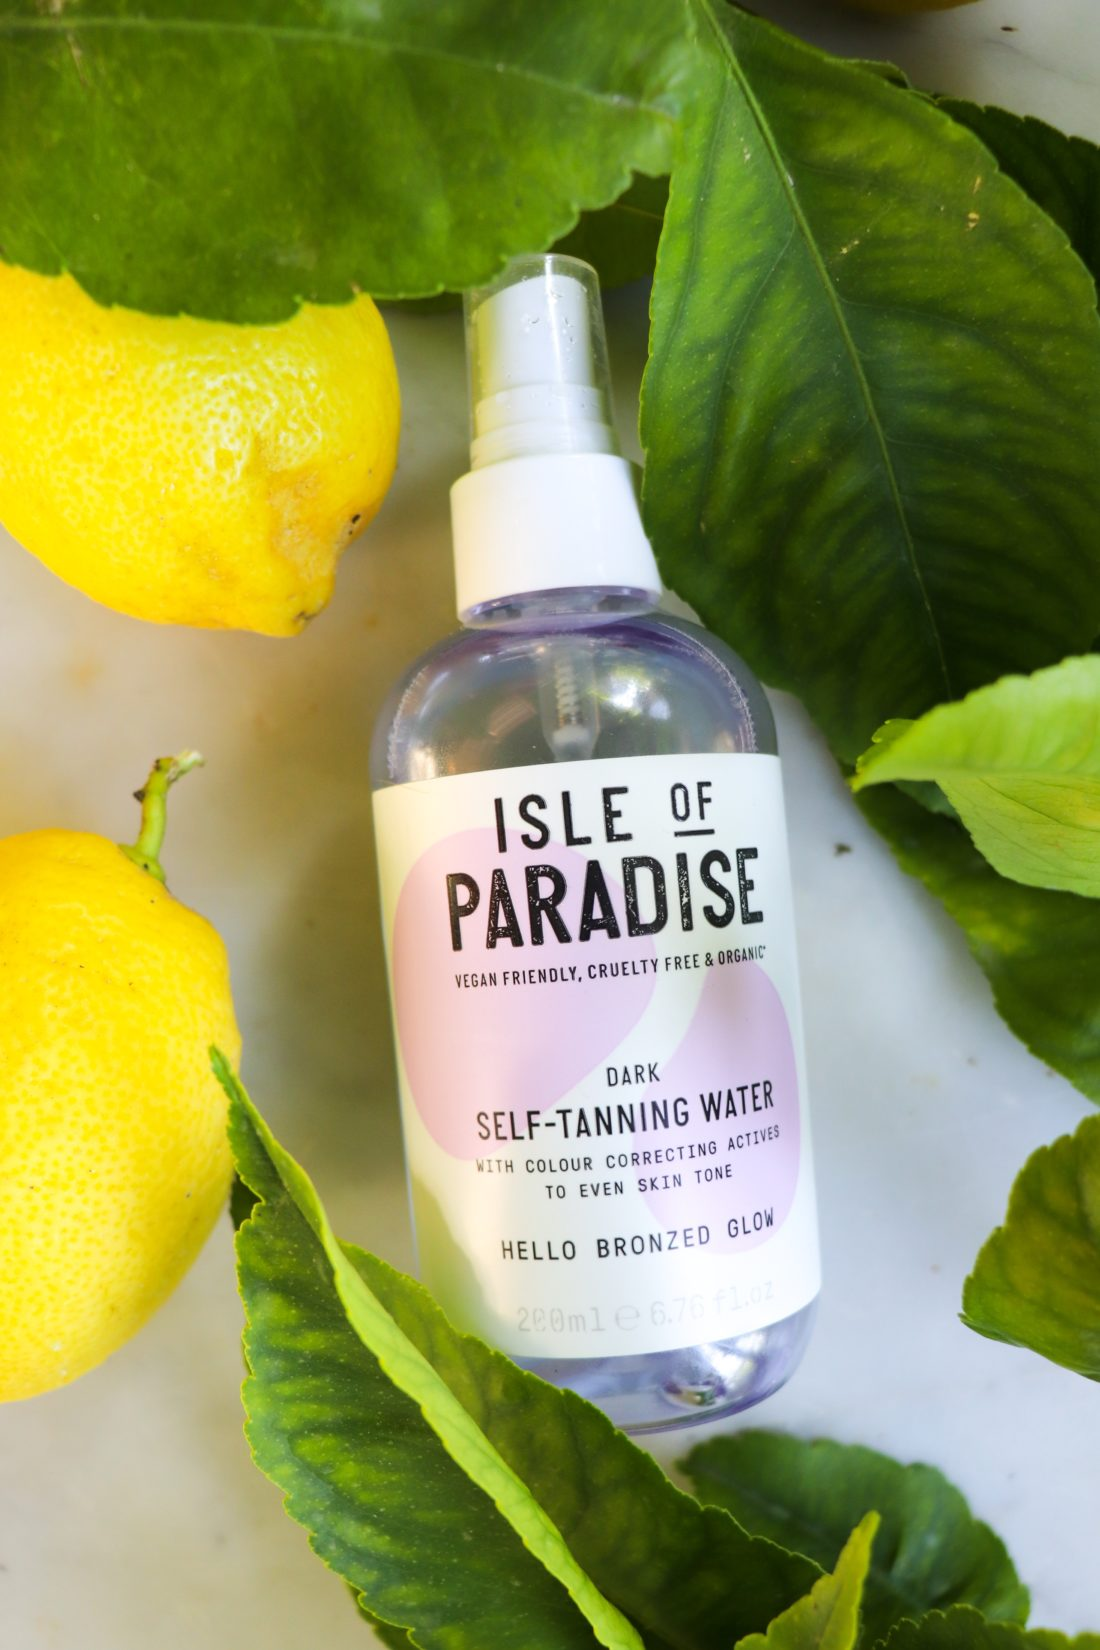 Eva Amurri Martino shares her July obsessions, including Isle Of Paradise Dark Self Tanning Water